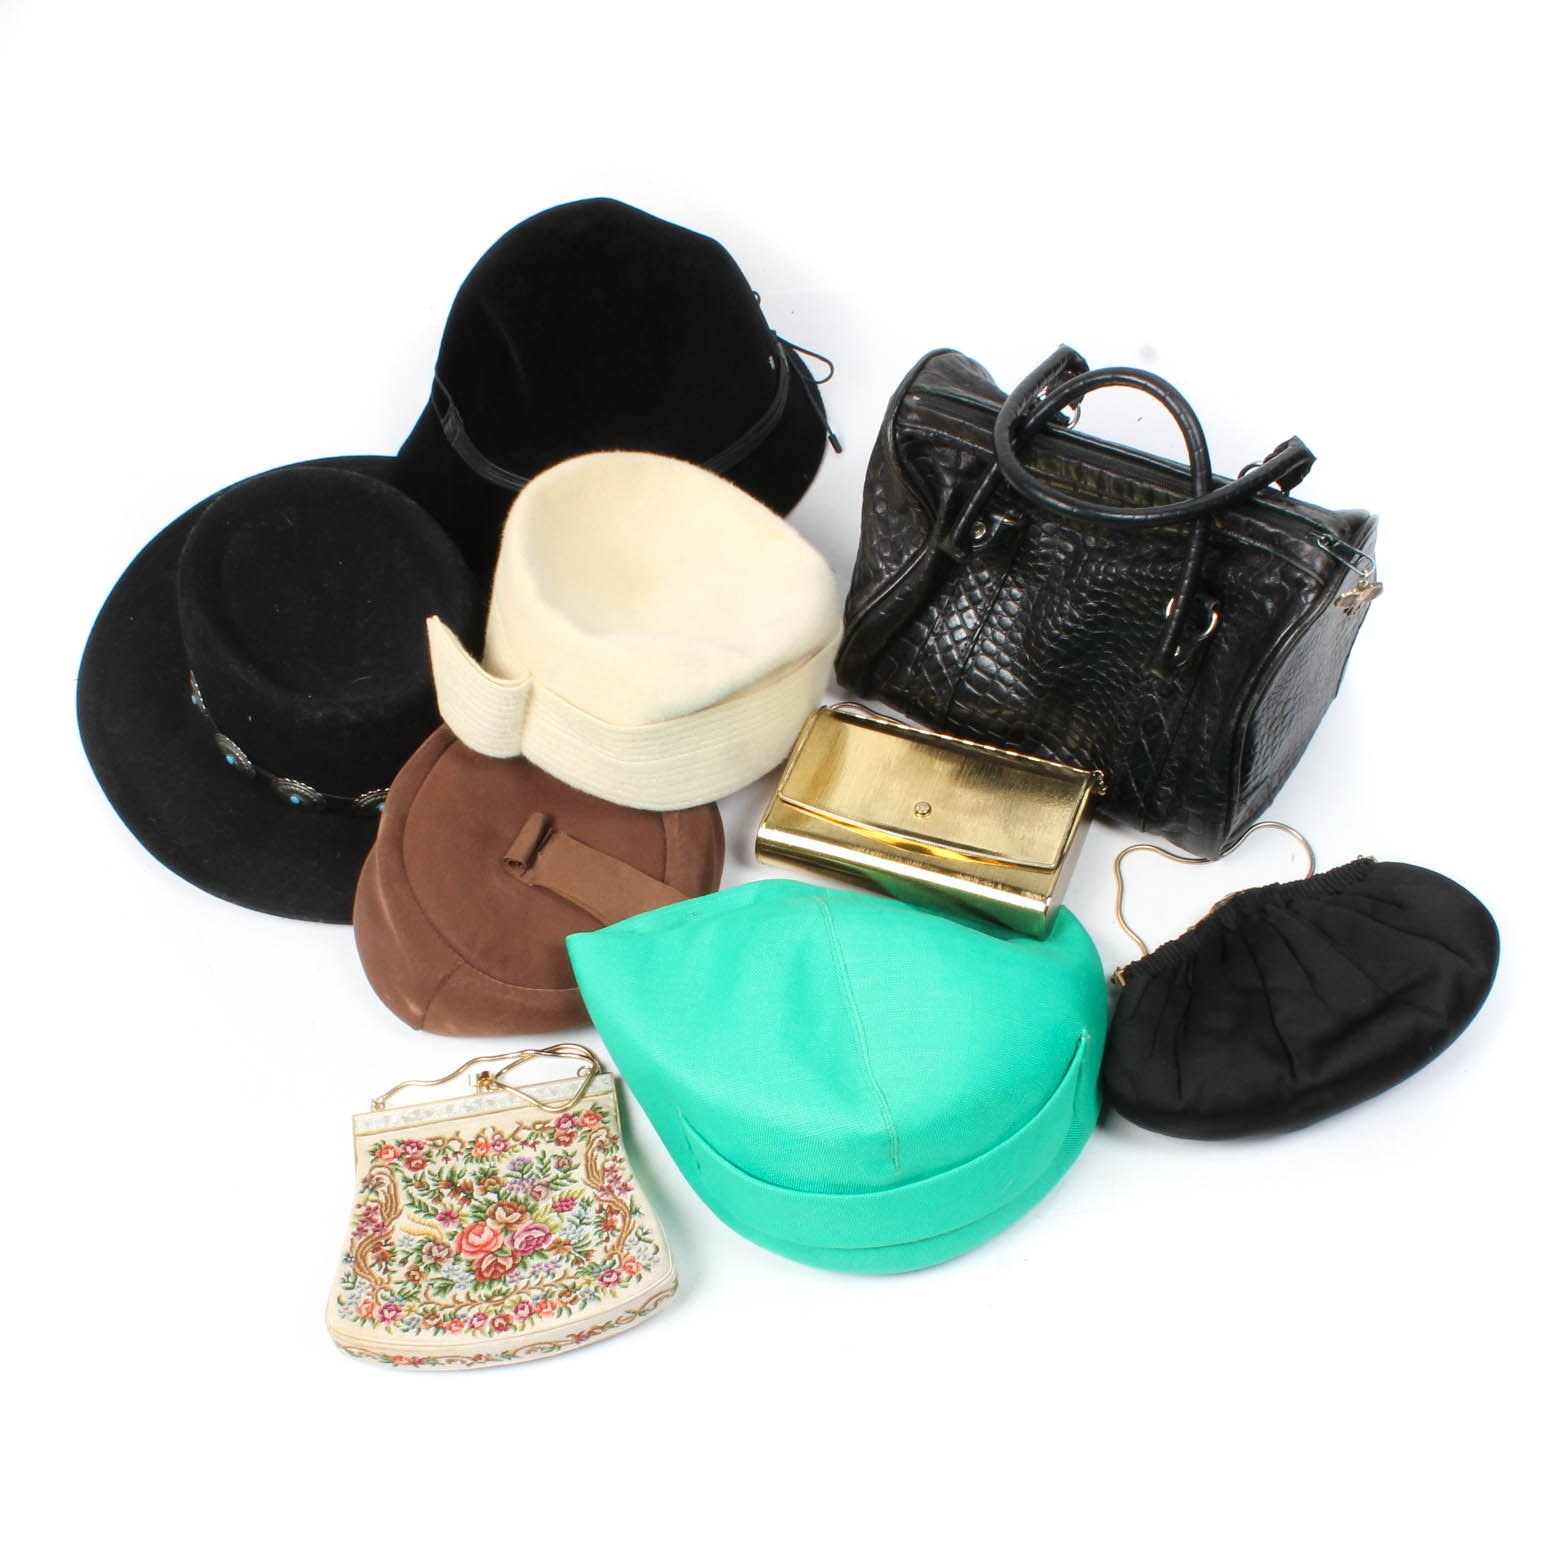 Vintage Hats and Handbags Featuring Pierre Balmain and Helen Kaminski